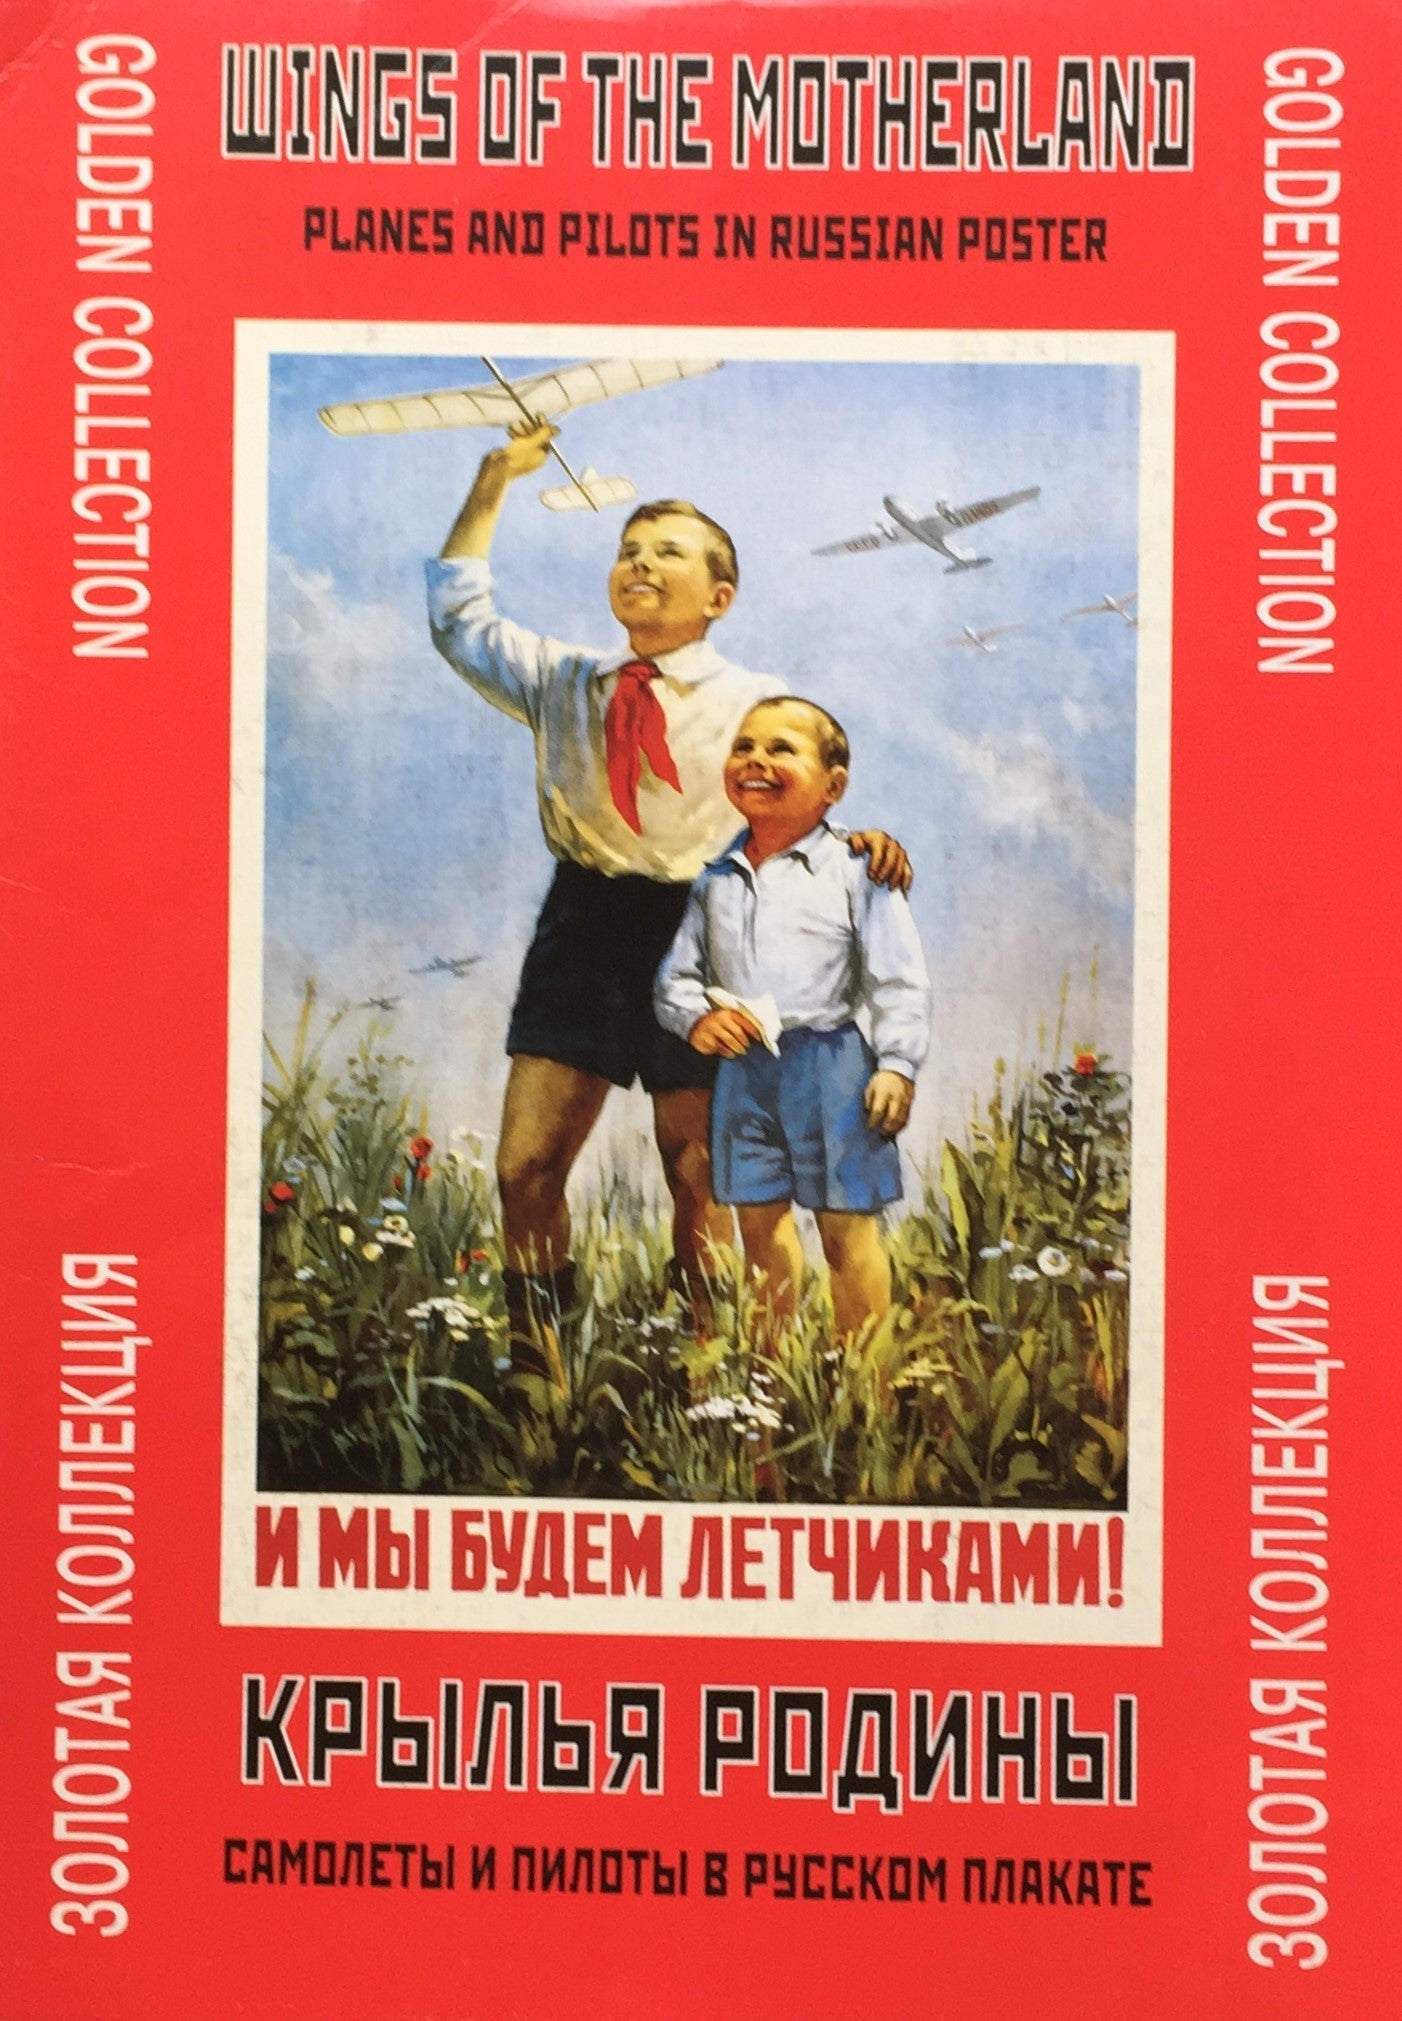 Wings of The Motherland Planes and Pilots In Russian Poster 祖国の翼 ロシアのポスター 飛行機とパイロット 20枚セット